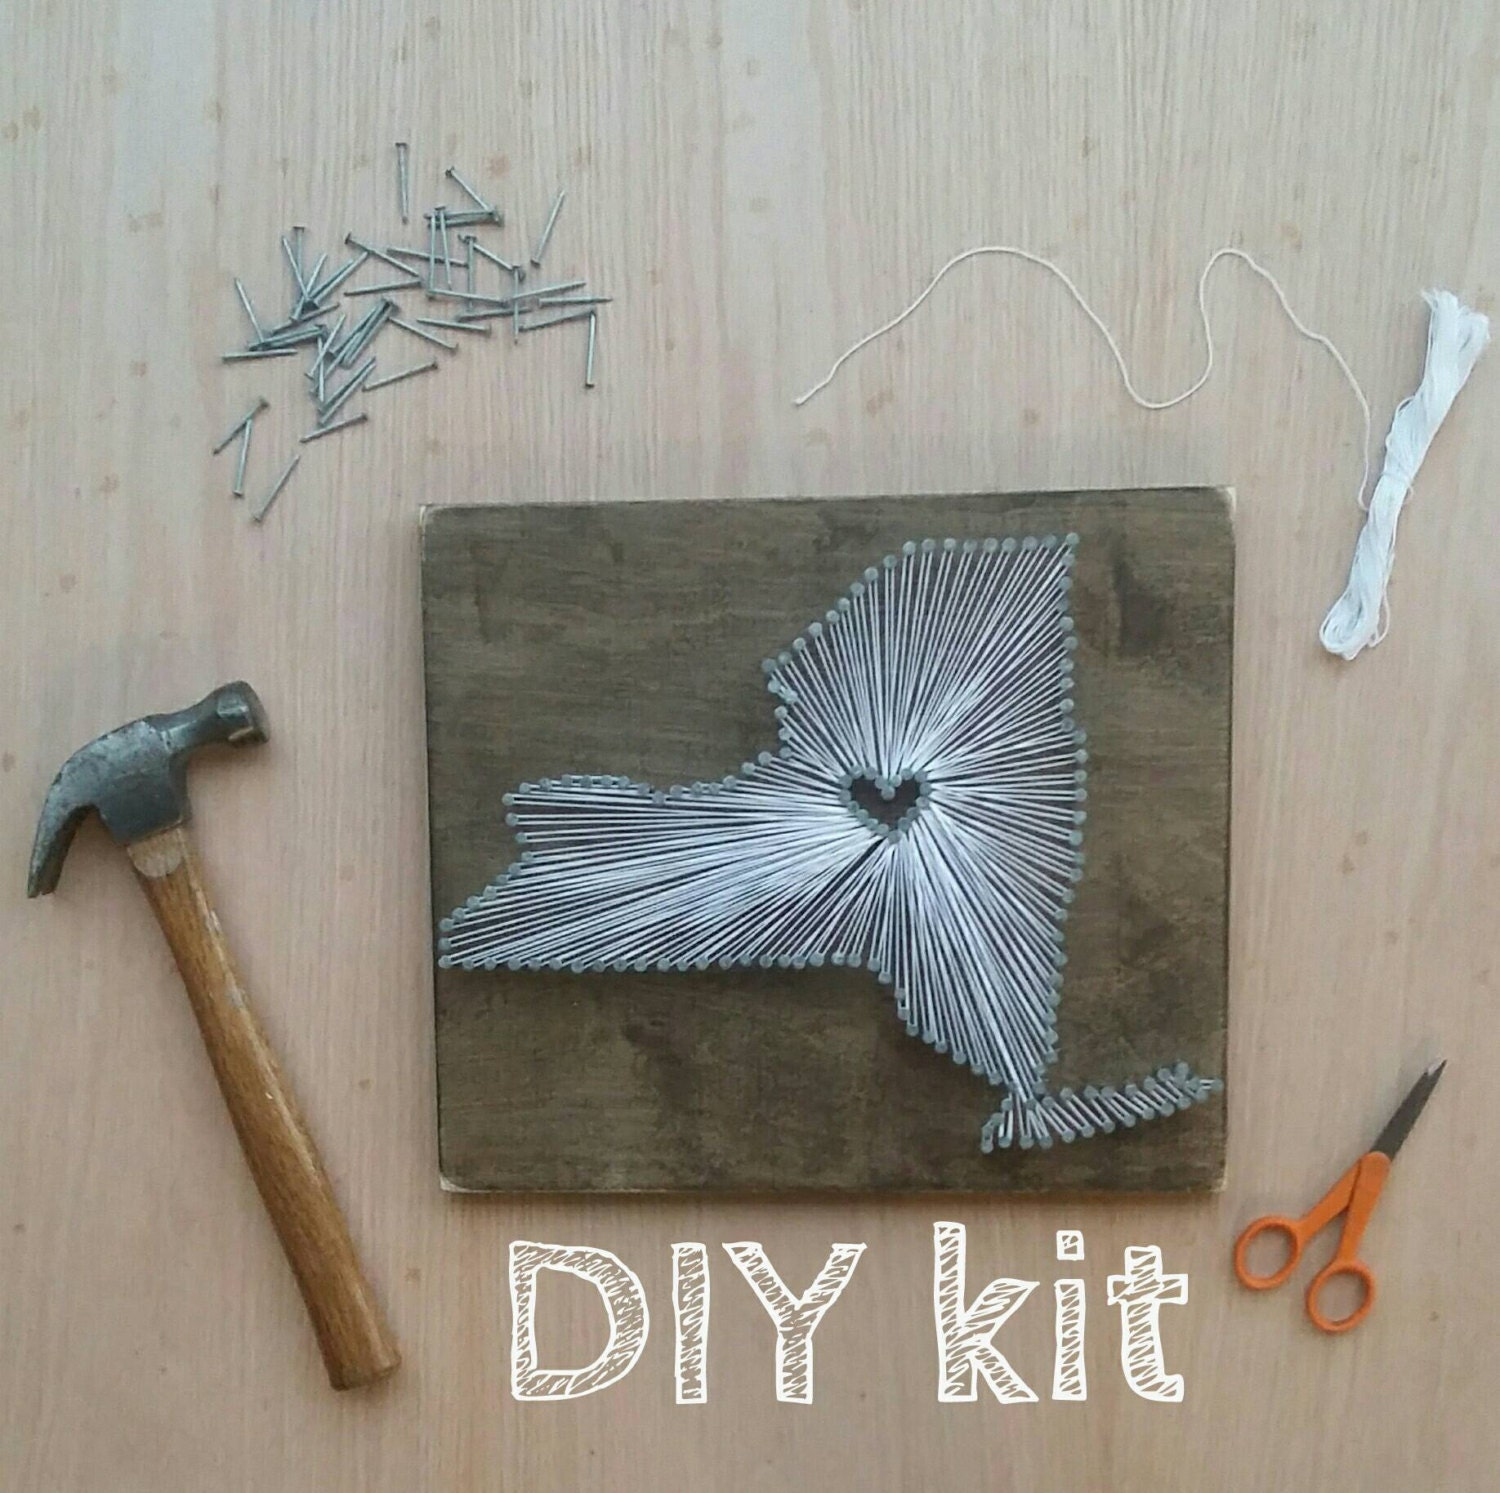 Diy new york string art kit state string art new york nail for Diy nail and string art